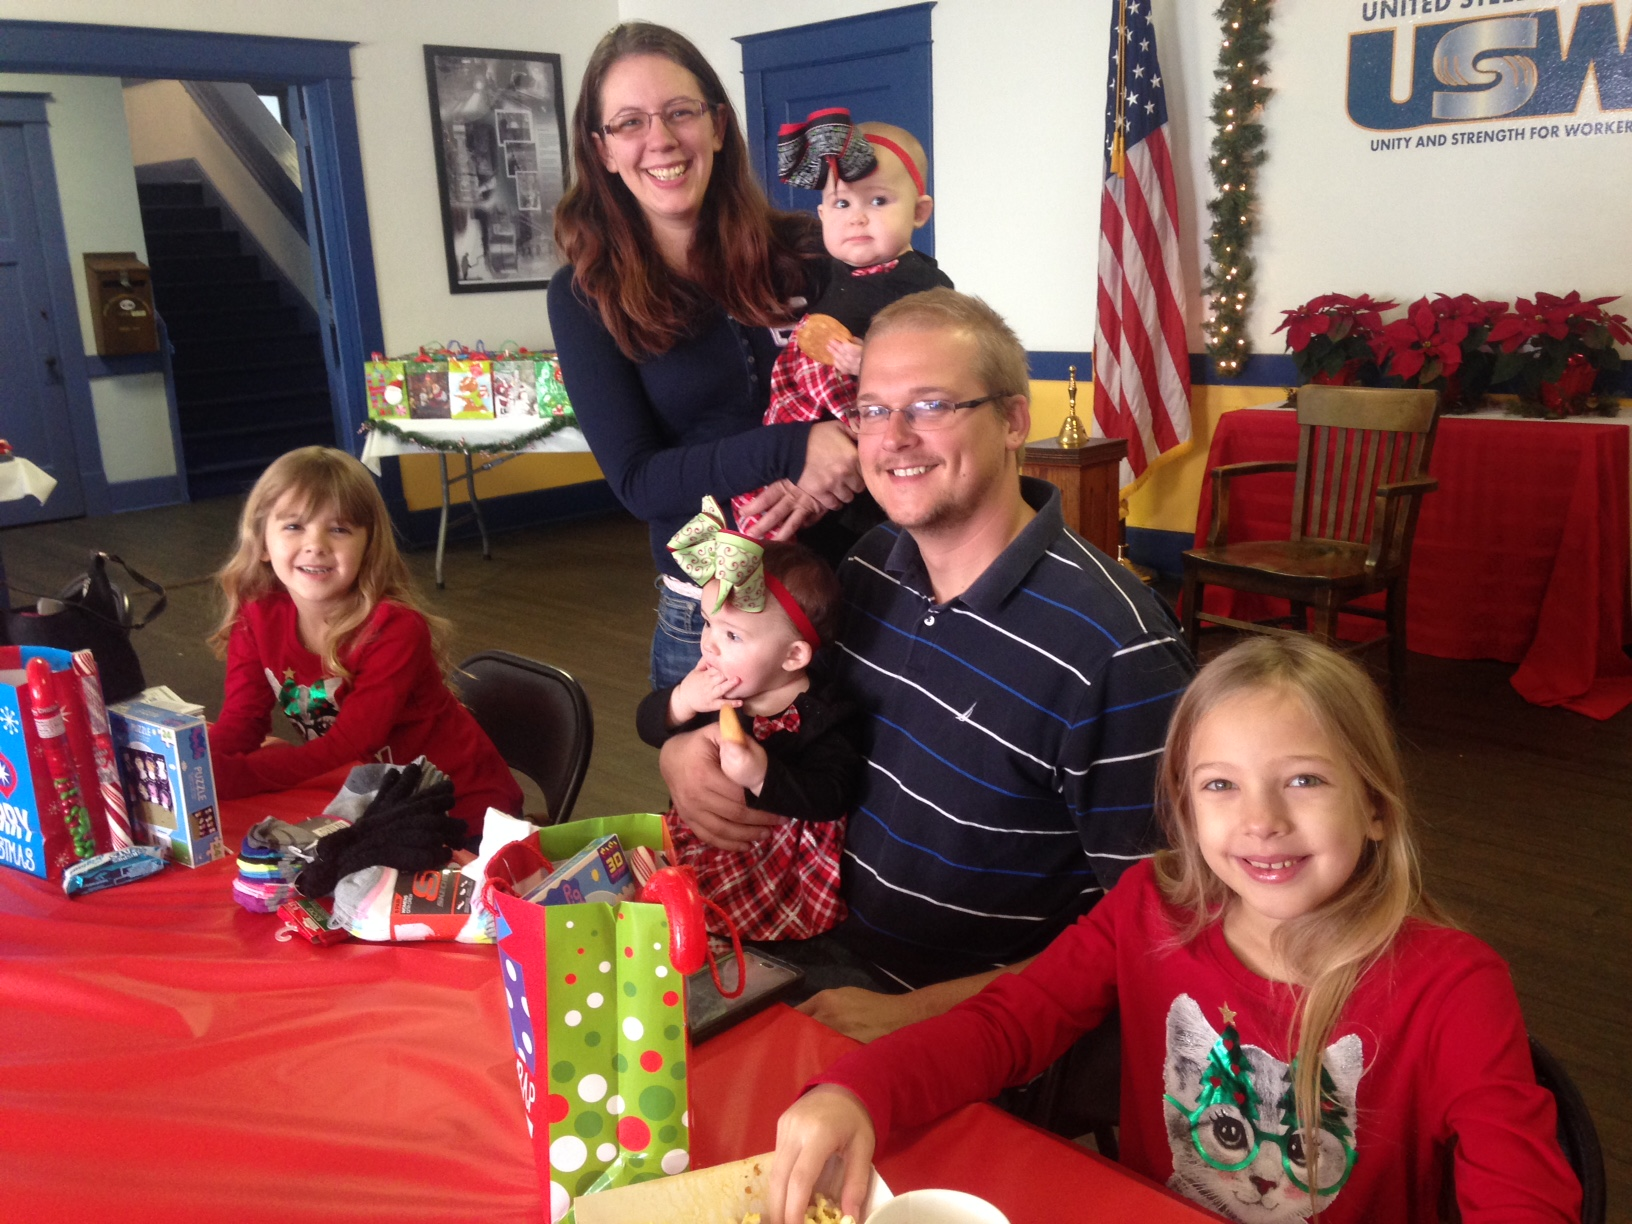 Steelworkers\' kids get a special visitor in time for Christmas   The ...